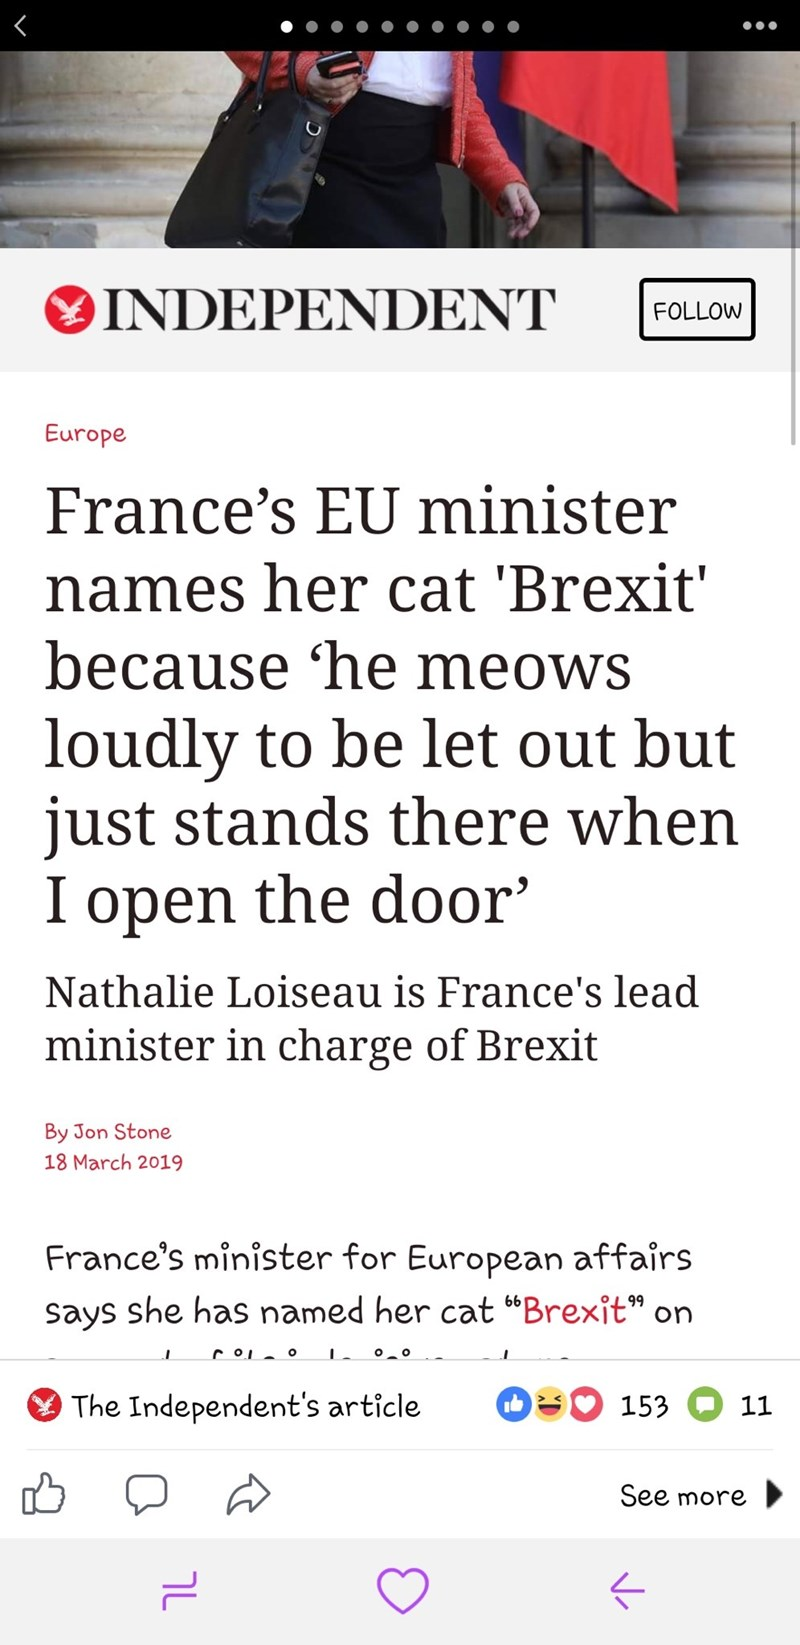 """Text - INDEPENDENT FOLLOW Europe France's EU minister names her cat 'Brexit' because 'he meows loudly to be let out but just stands there when I open the door' Nathalie Loiseau is France's lead minister in charge of Brexit By Jon Stone 18 March 2019 France's minister for European affairs says she has named her cat """"Brexit"""" on roI o oo OL153 The Independent's article 11 See more ךL"""